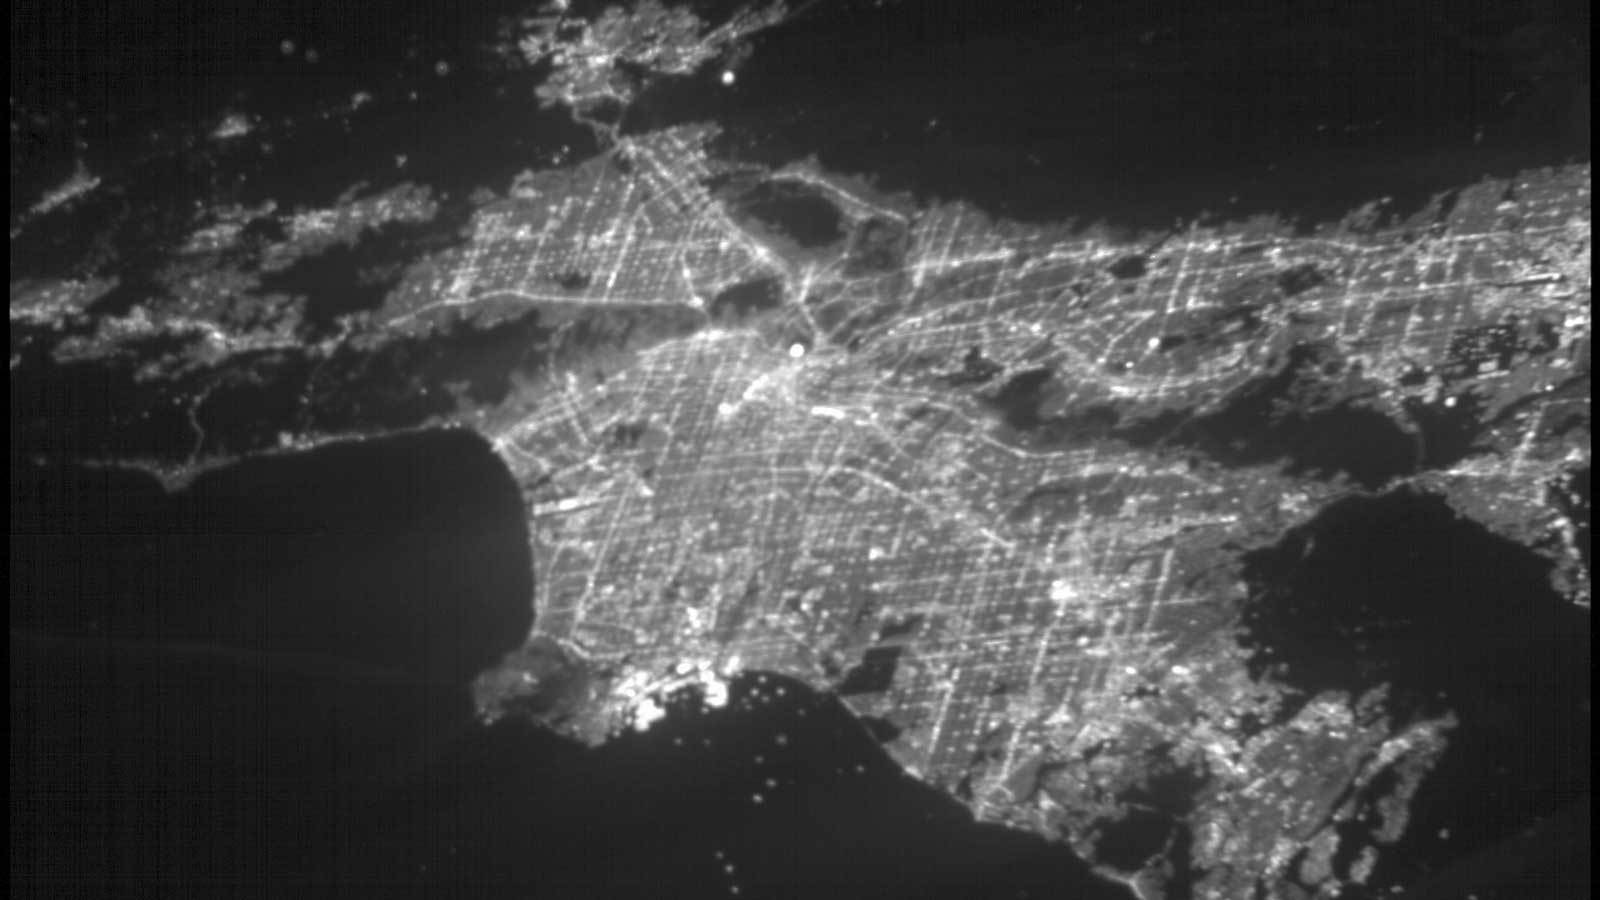 A black and white image of the lights of Los Angeles from space via the small satellite ASTERIA